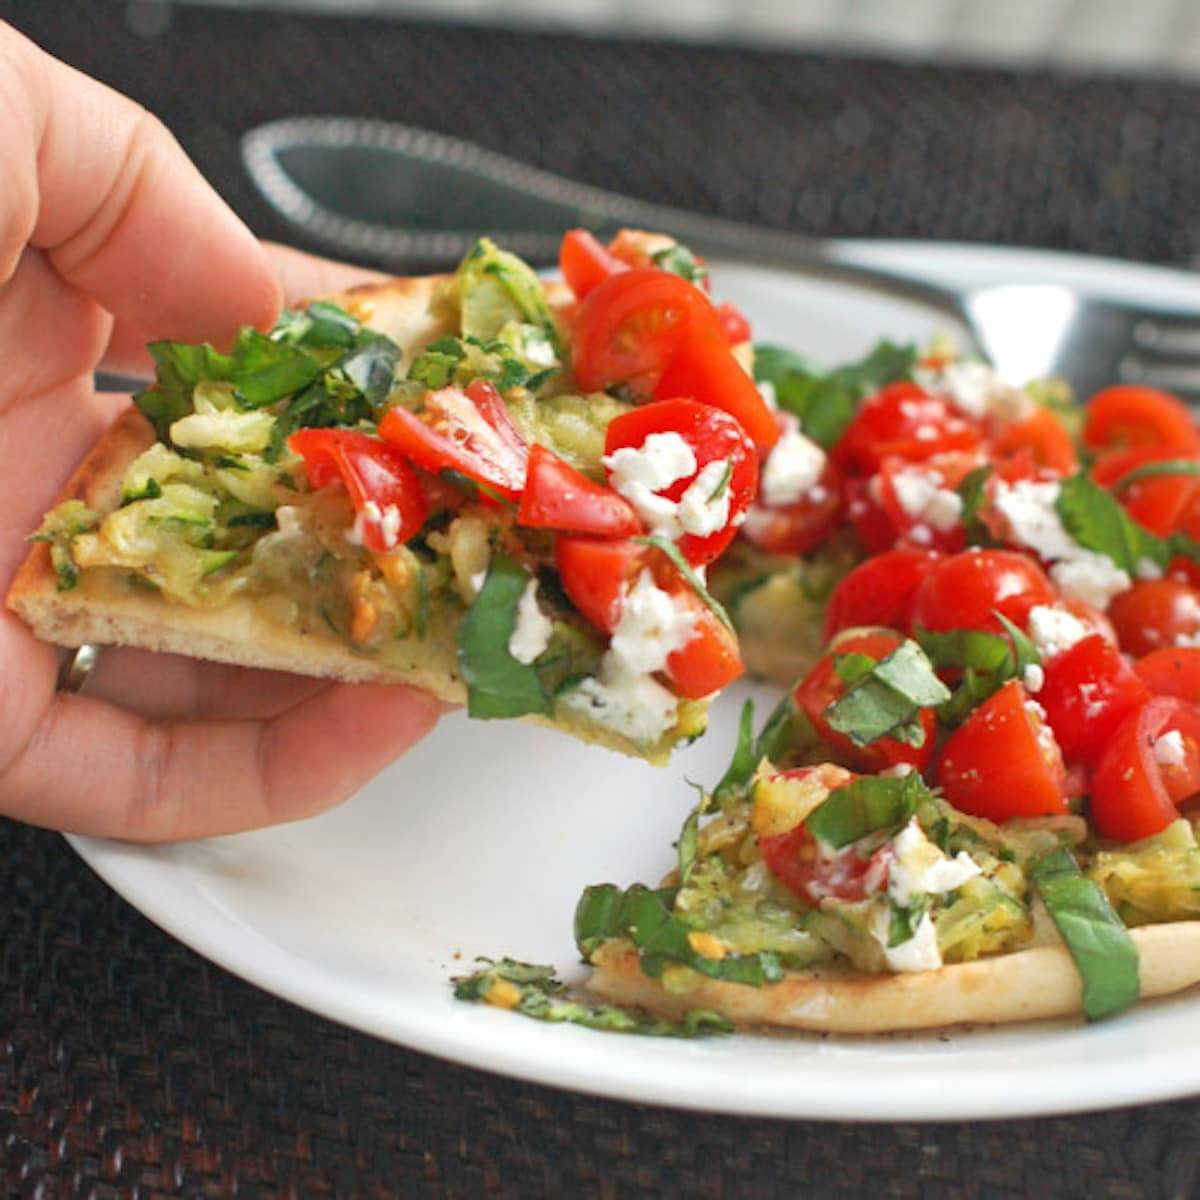 This superfast flatbread pizza features fresh farmer's market produce like zucchini, cherry tomatoes, and basil. Easy and delicious! | pinchofyum.com